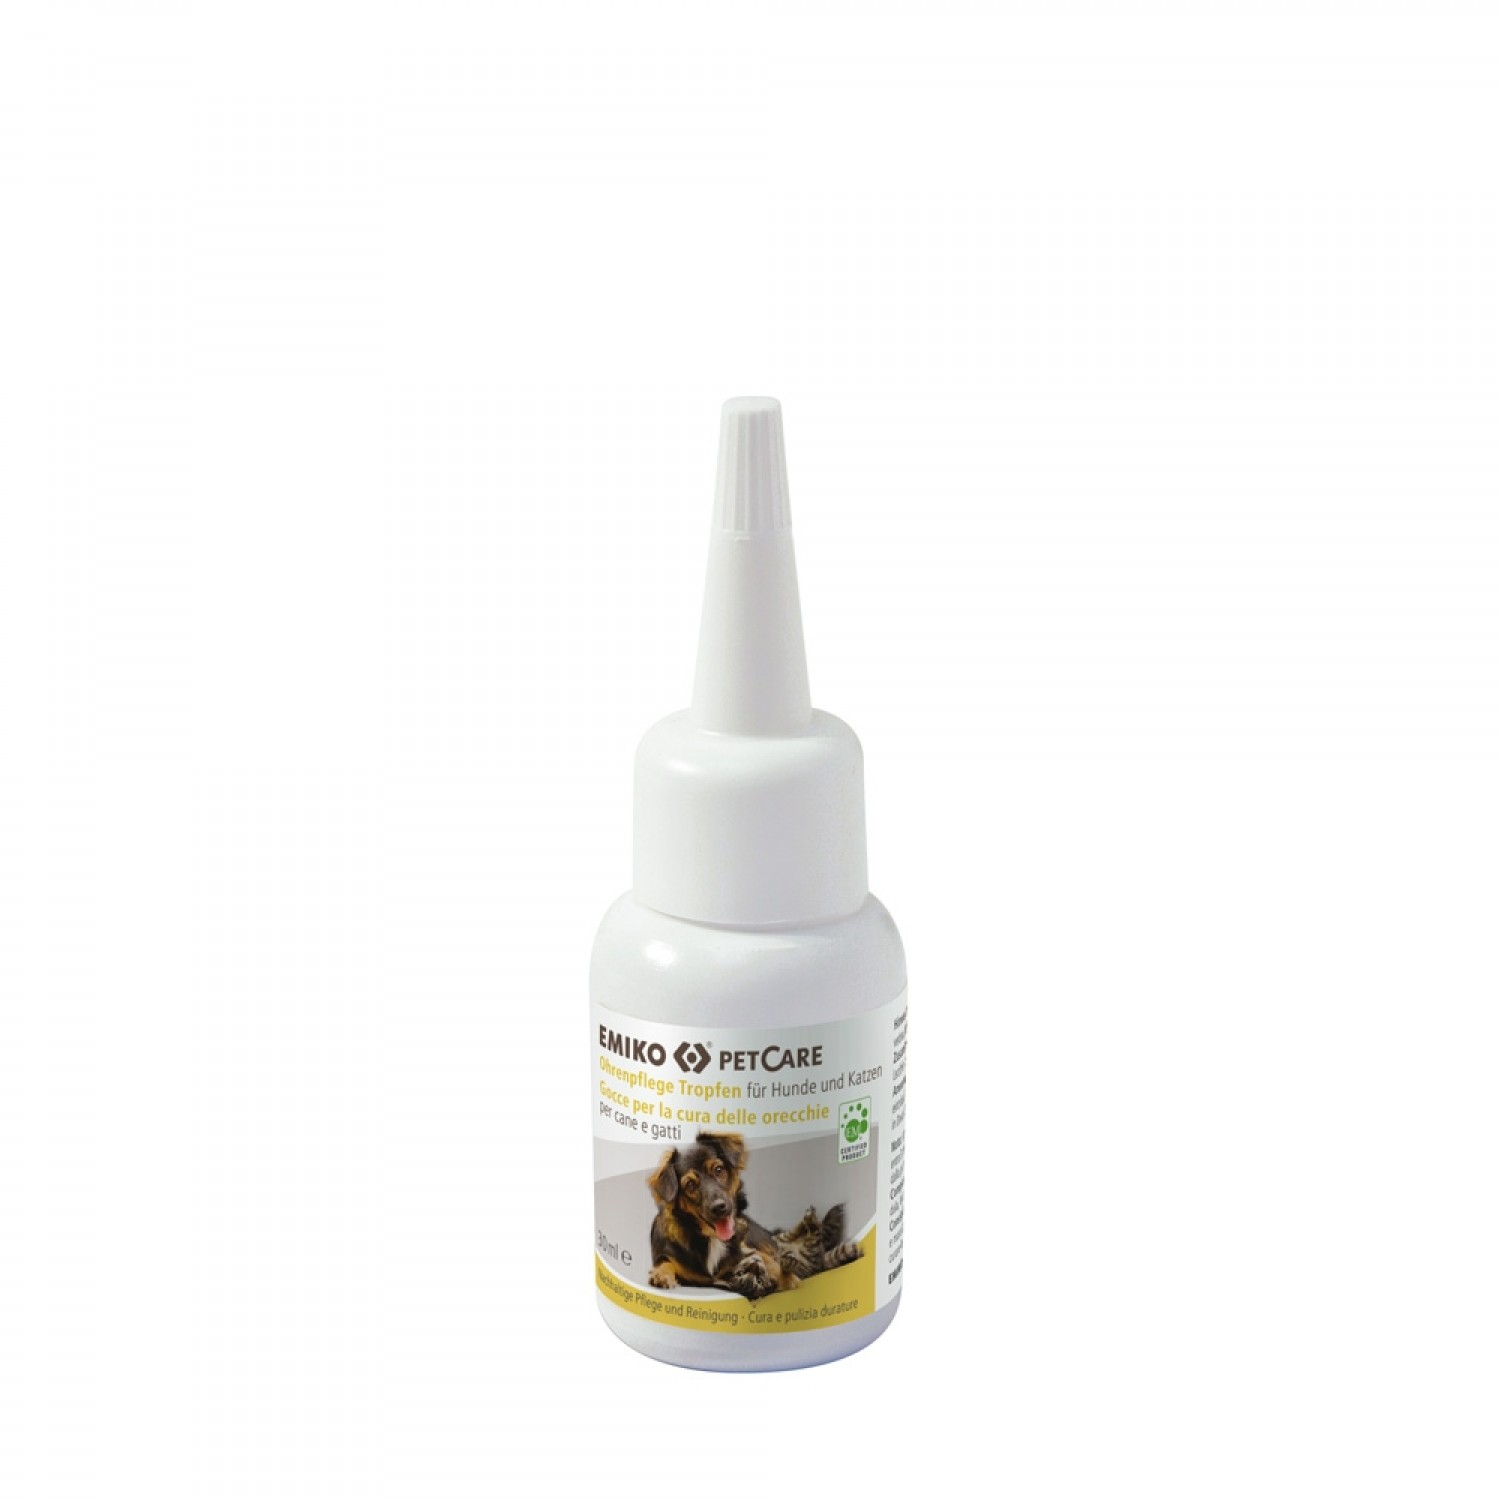 Emiko PetCare Ear Care Drops for Dogs & Cats